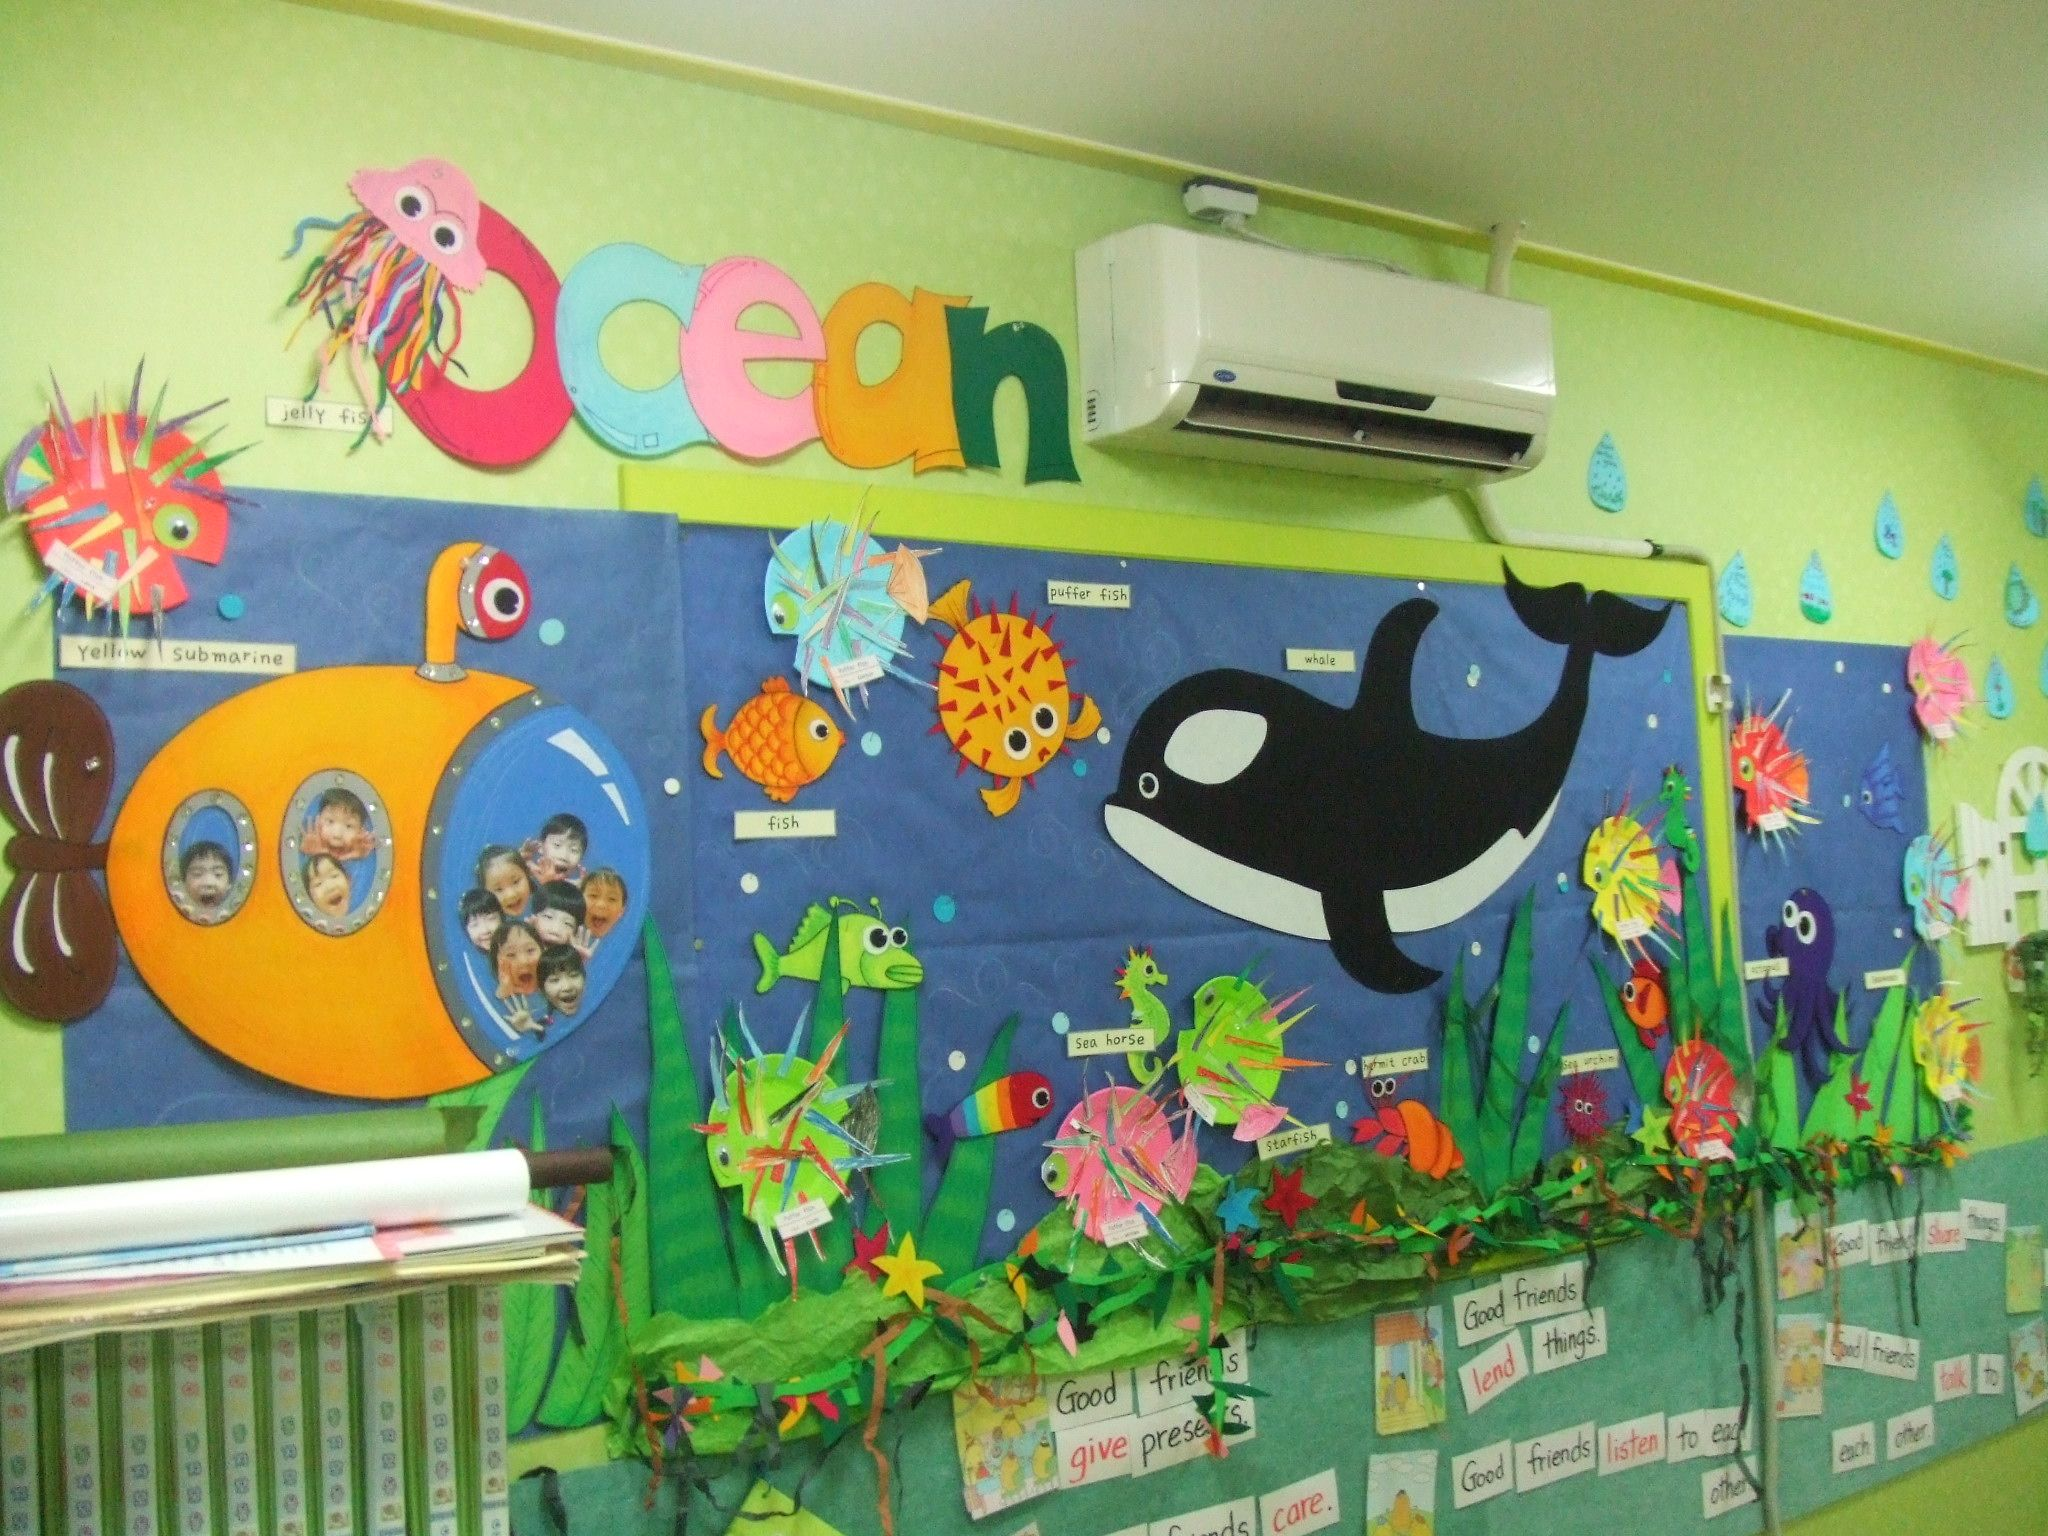 Art craft ideas and bulletin boards for elementary schools vegetable - I Love This Over The Top Ocean Bulletin Board Display